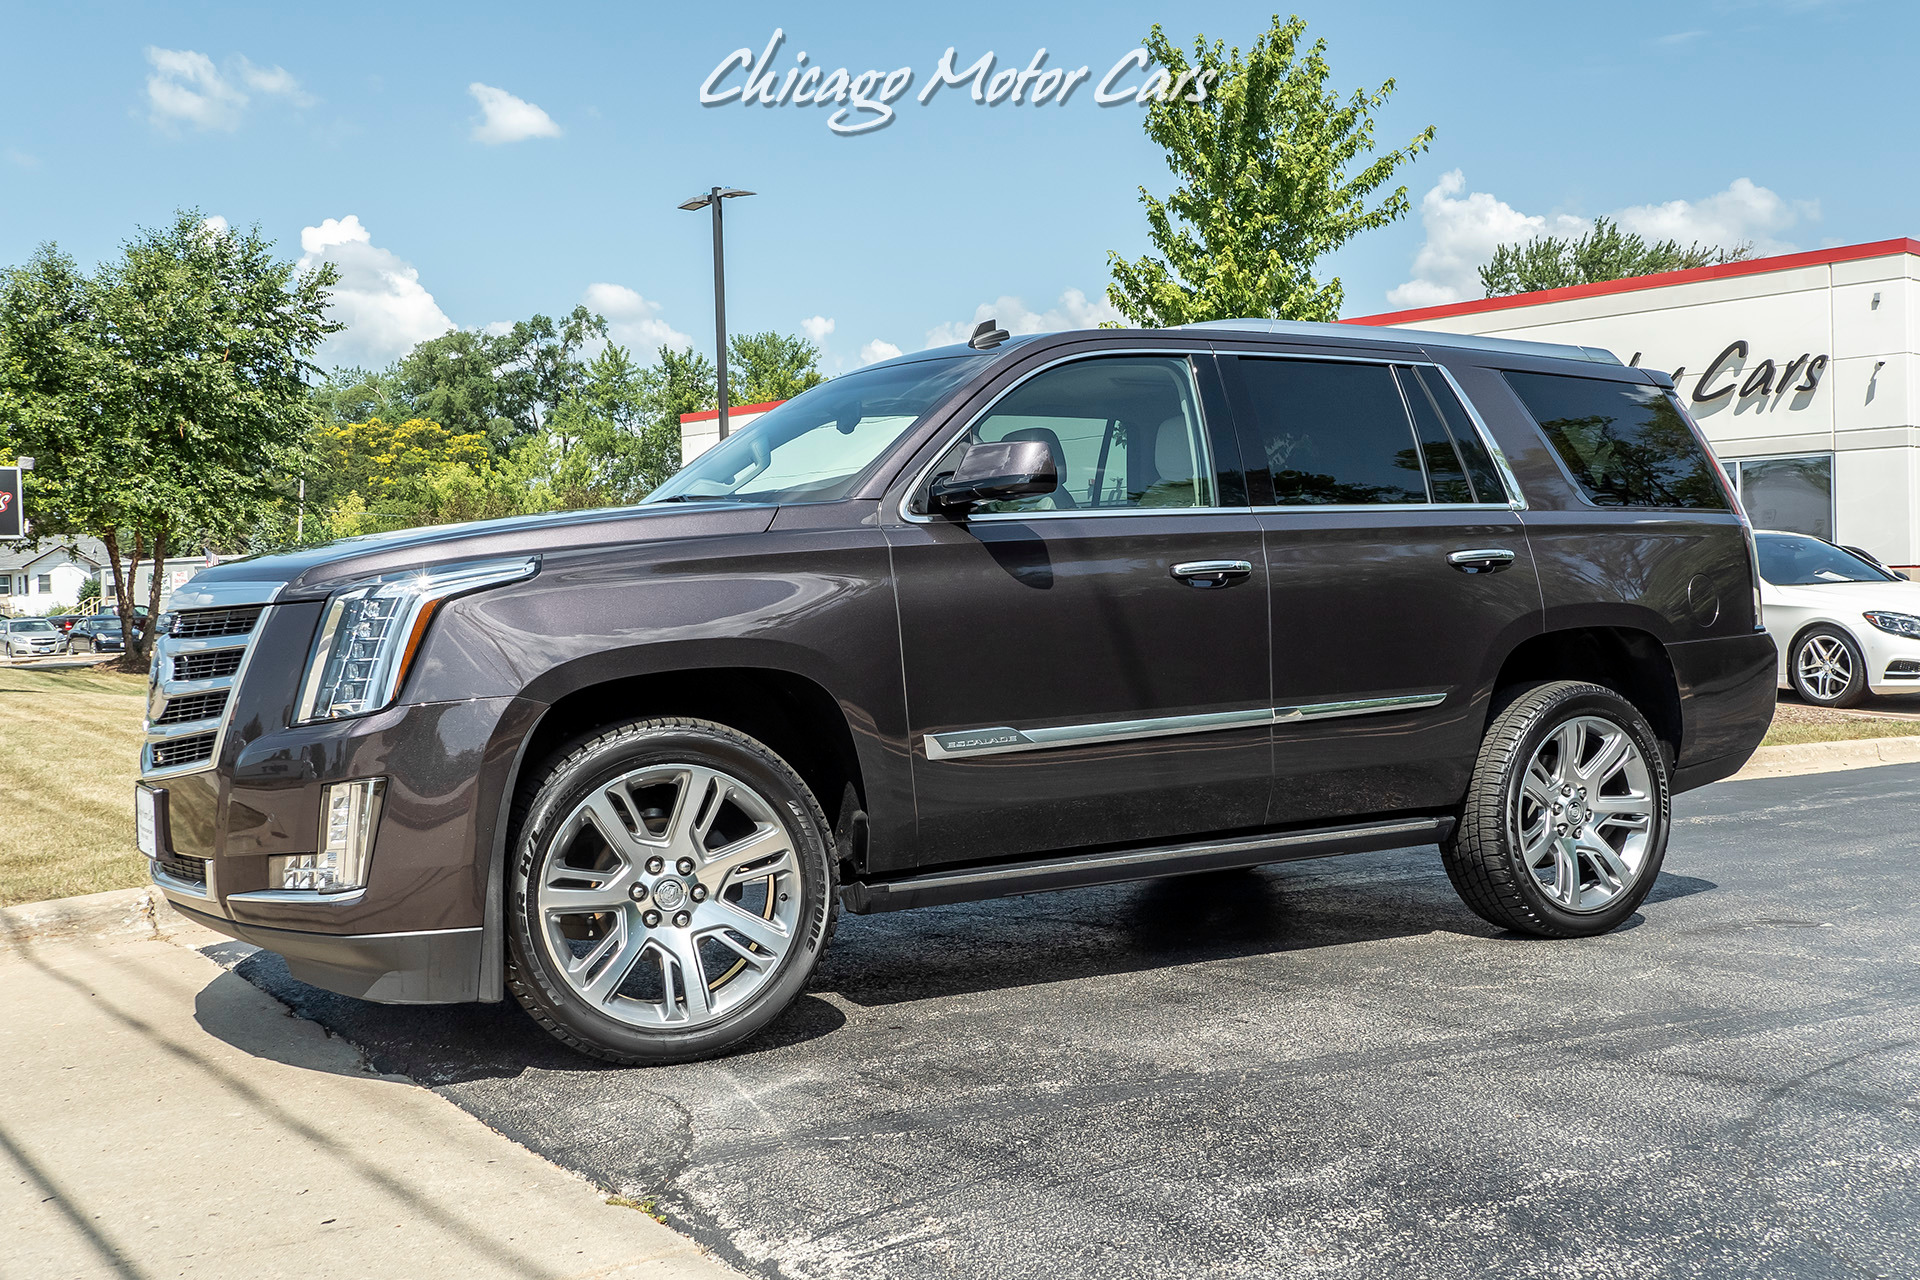 Used-2015-Cadillac-Escalade-Premium-AWD-SUV-LOADED-22-INCH-WHEELS-ONE-OWNER